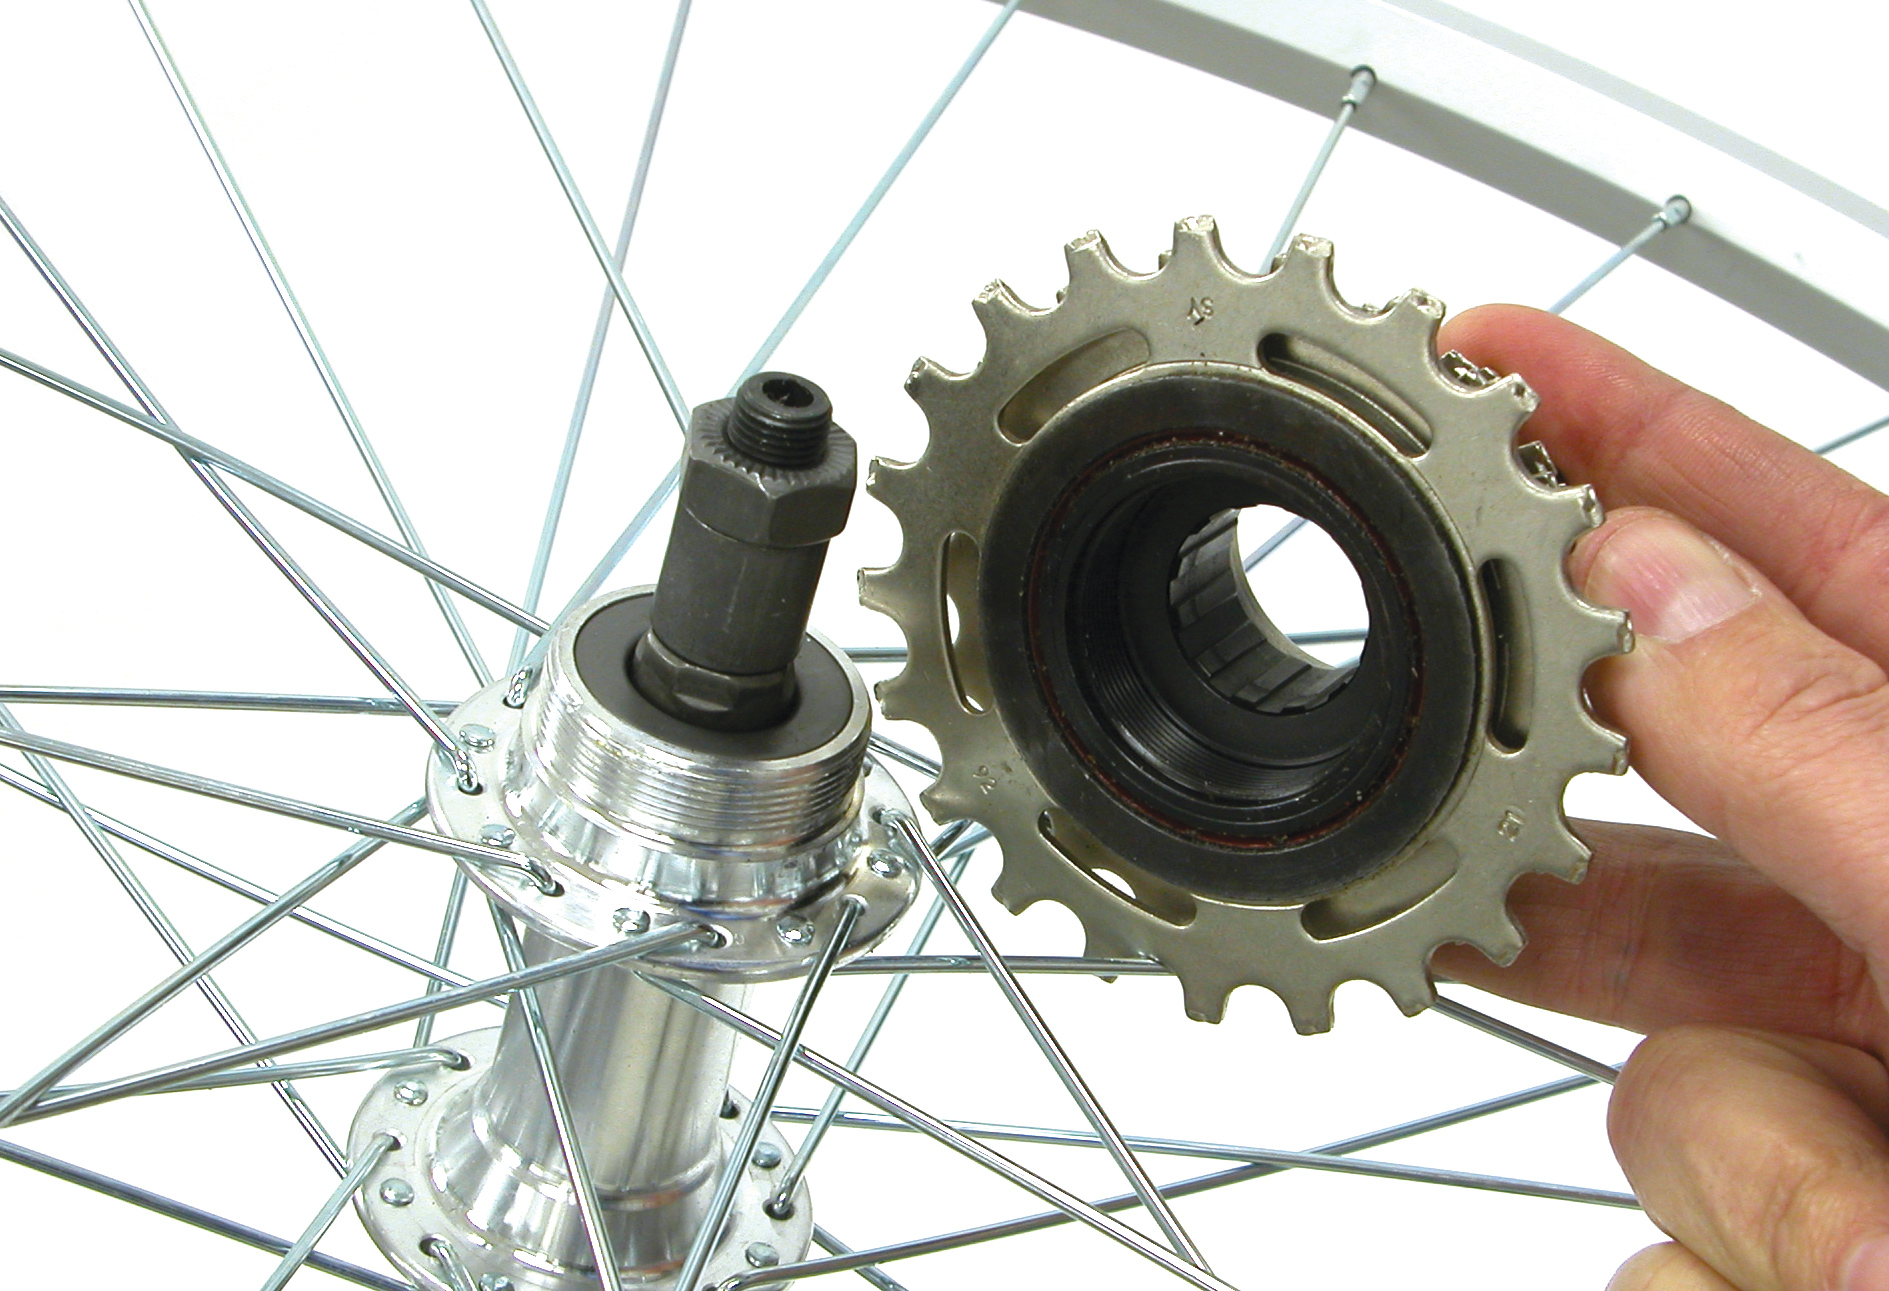 How to Change a Rear Cassette forecasting